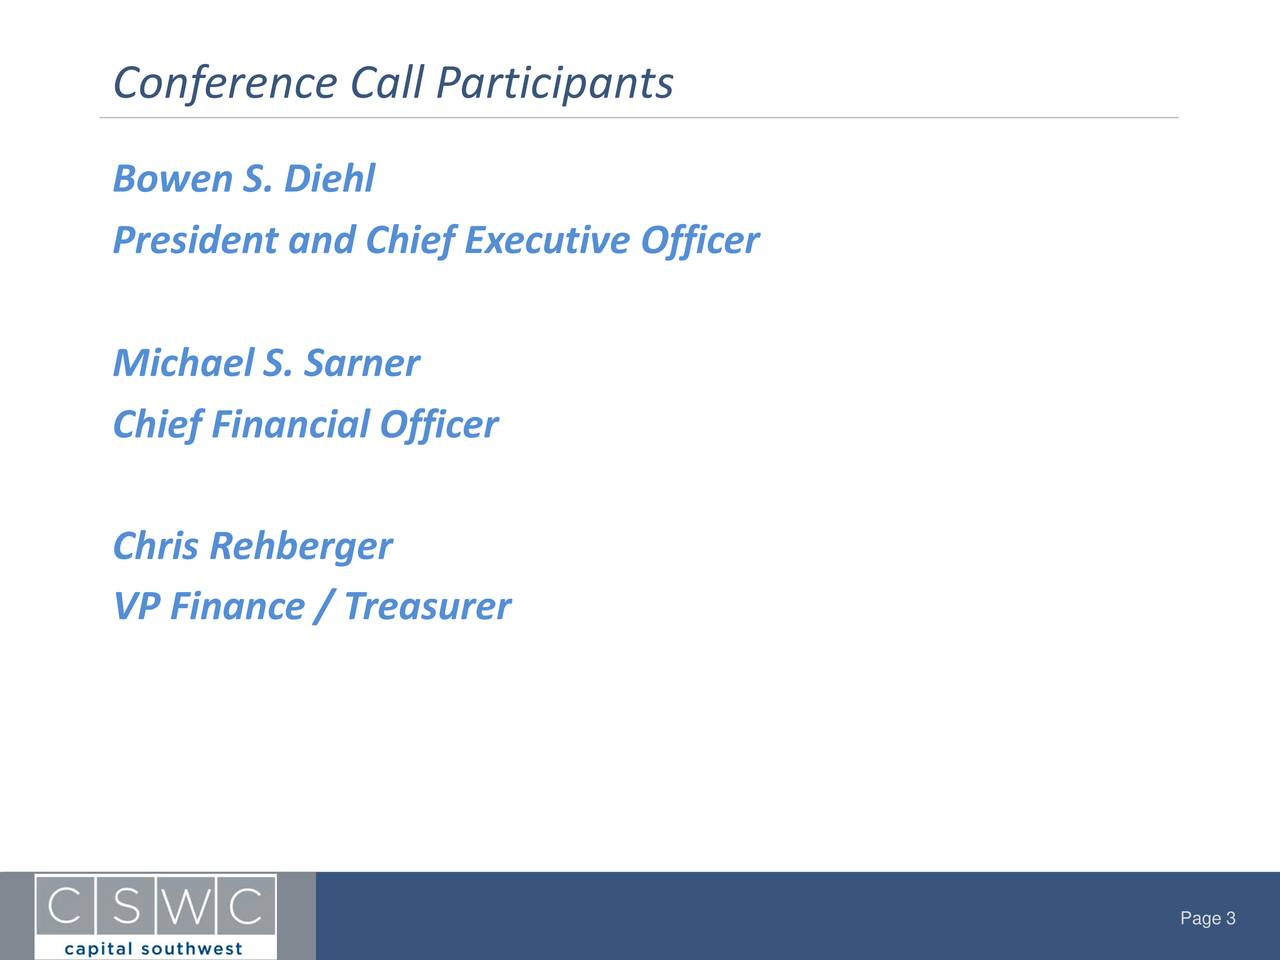 Bowen S. Diehl President and Chief Executive Officer Michael S. Sarner Chief Financial Officer Chris Rehberger VP Finance / Treasurer Page 3